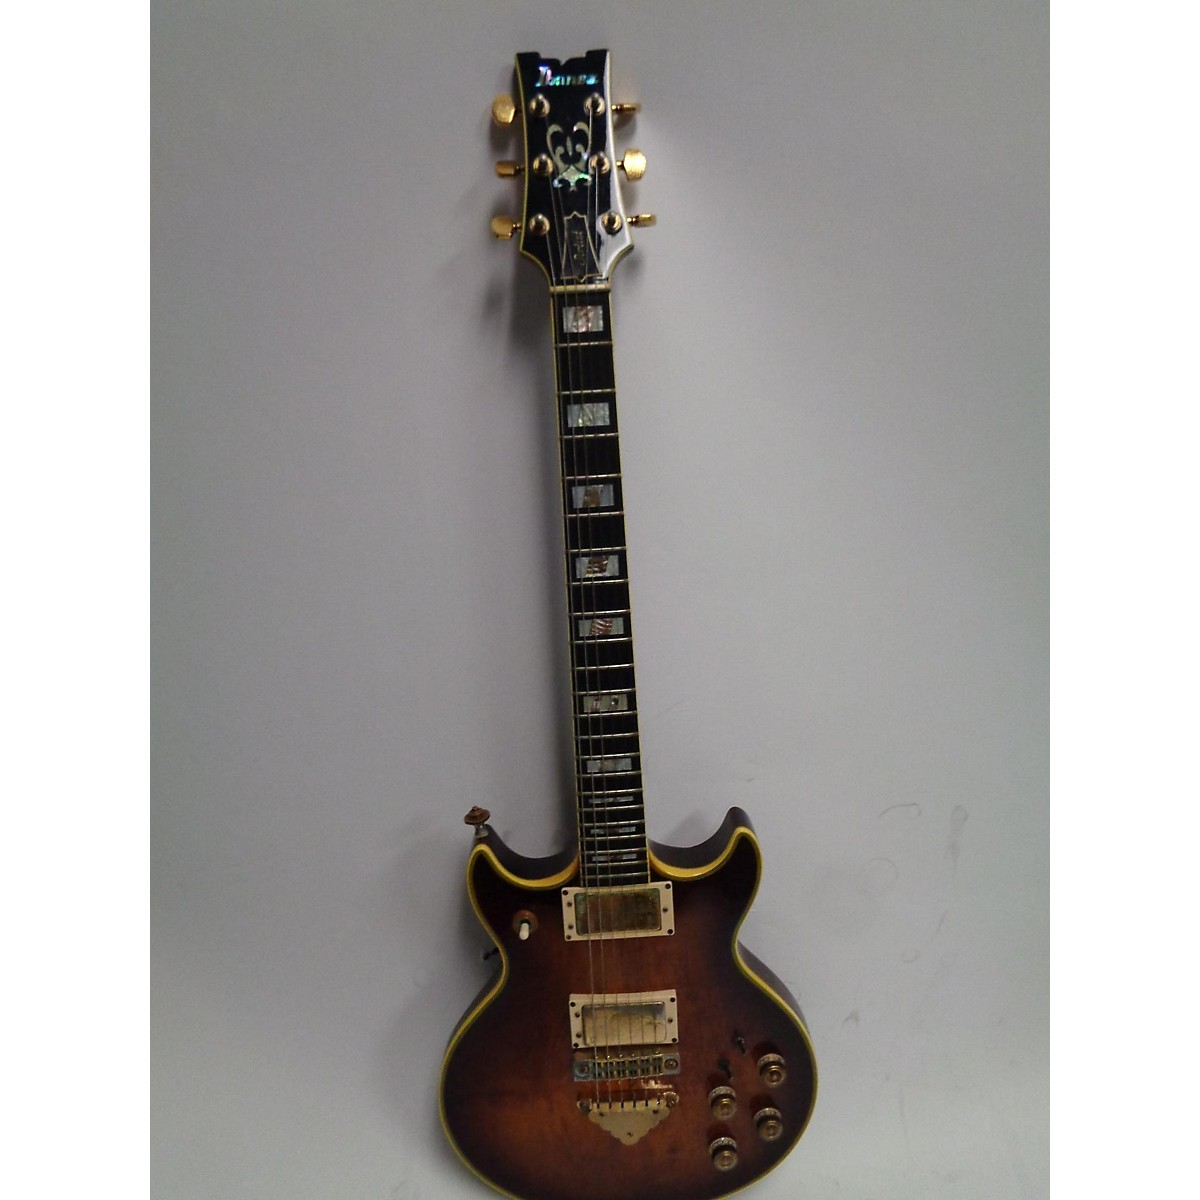 Ibanez 1978 Artist AR300 Solid Body Electric Guitar